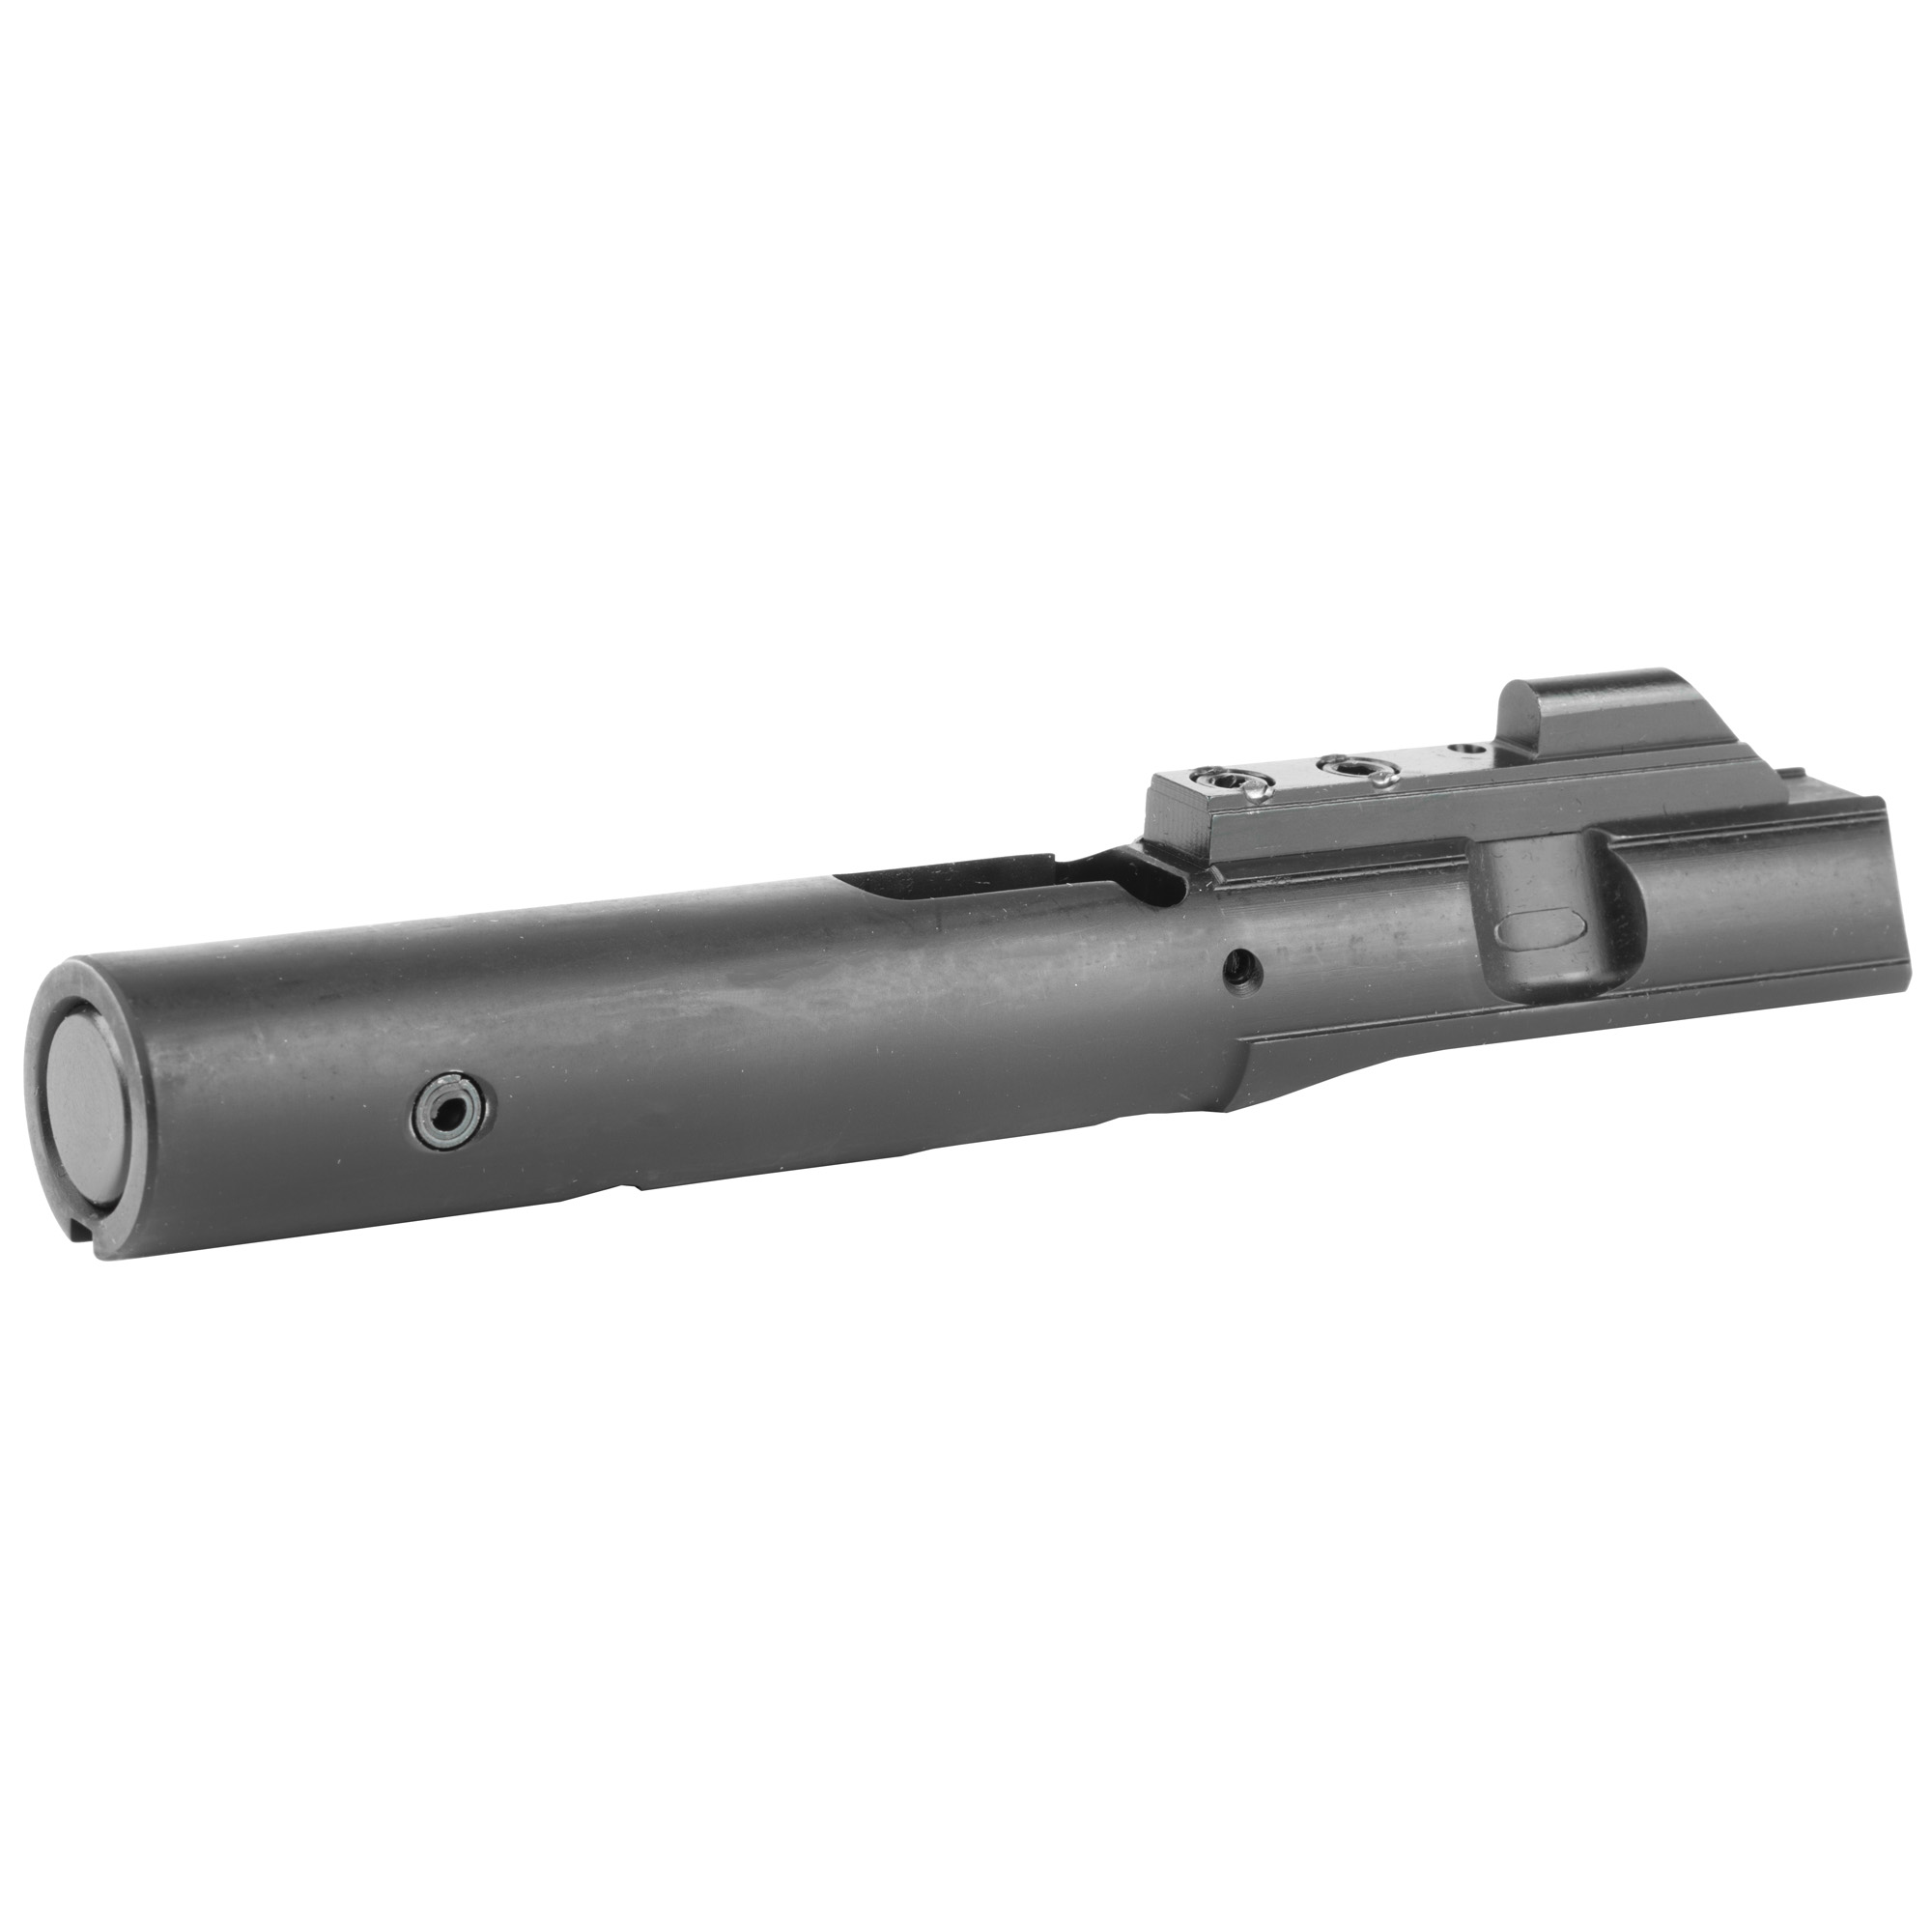 This Mk9 Blowback Bolt assembly has been modified to operate with Glock Magazines in addition to the traditional Colt style 9mm Magazines. This bolt does NOT work with CMMG GUARD or Banshee models.